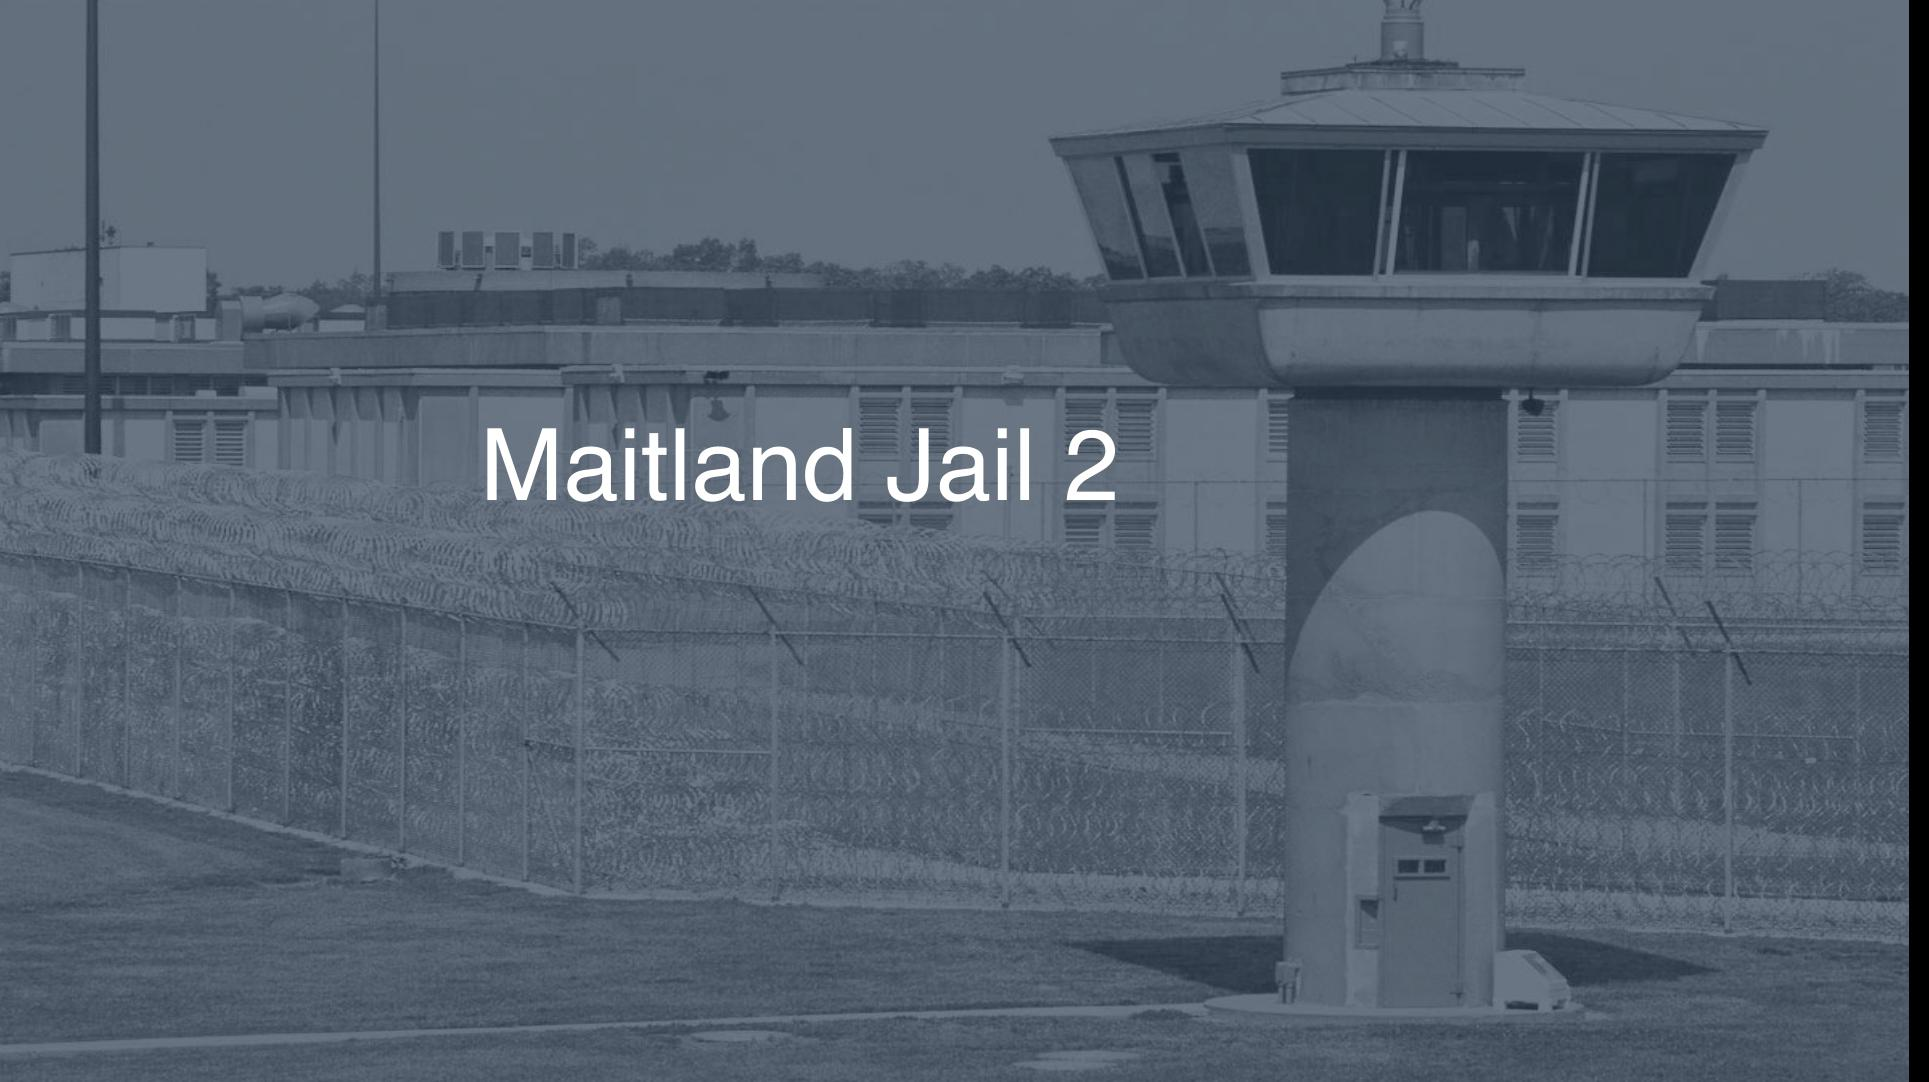 Maitland Jail correctional facility picture